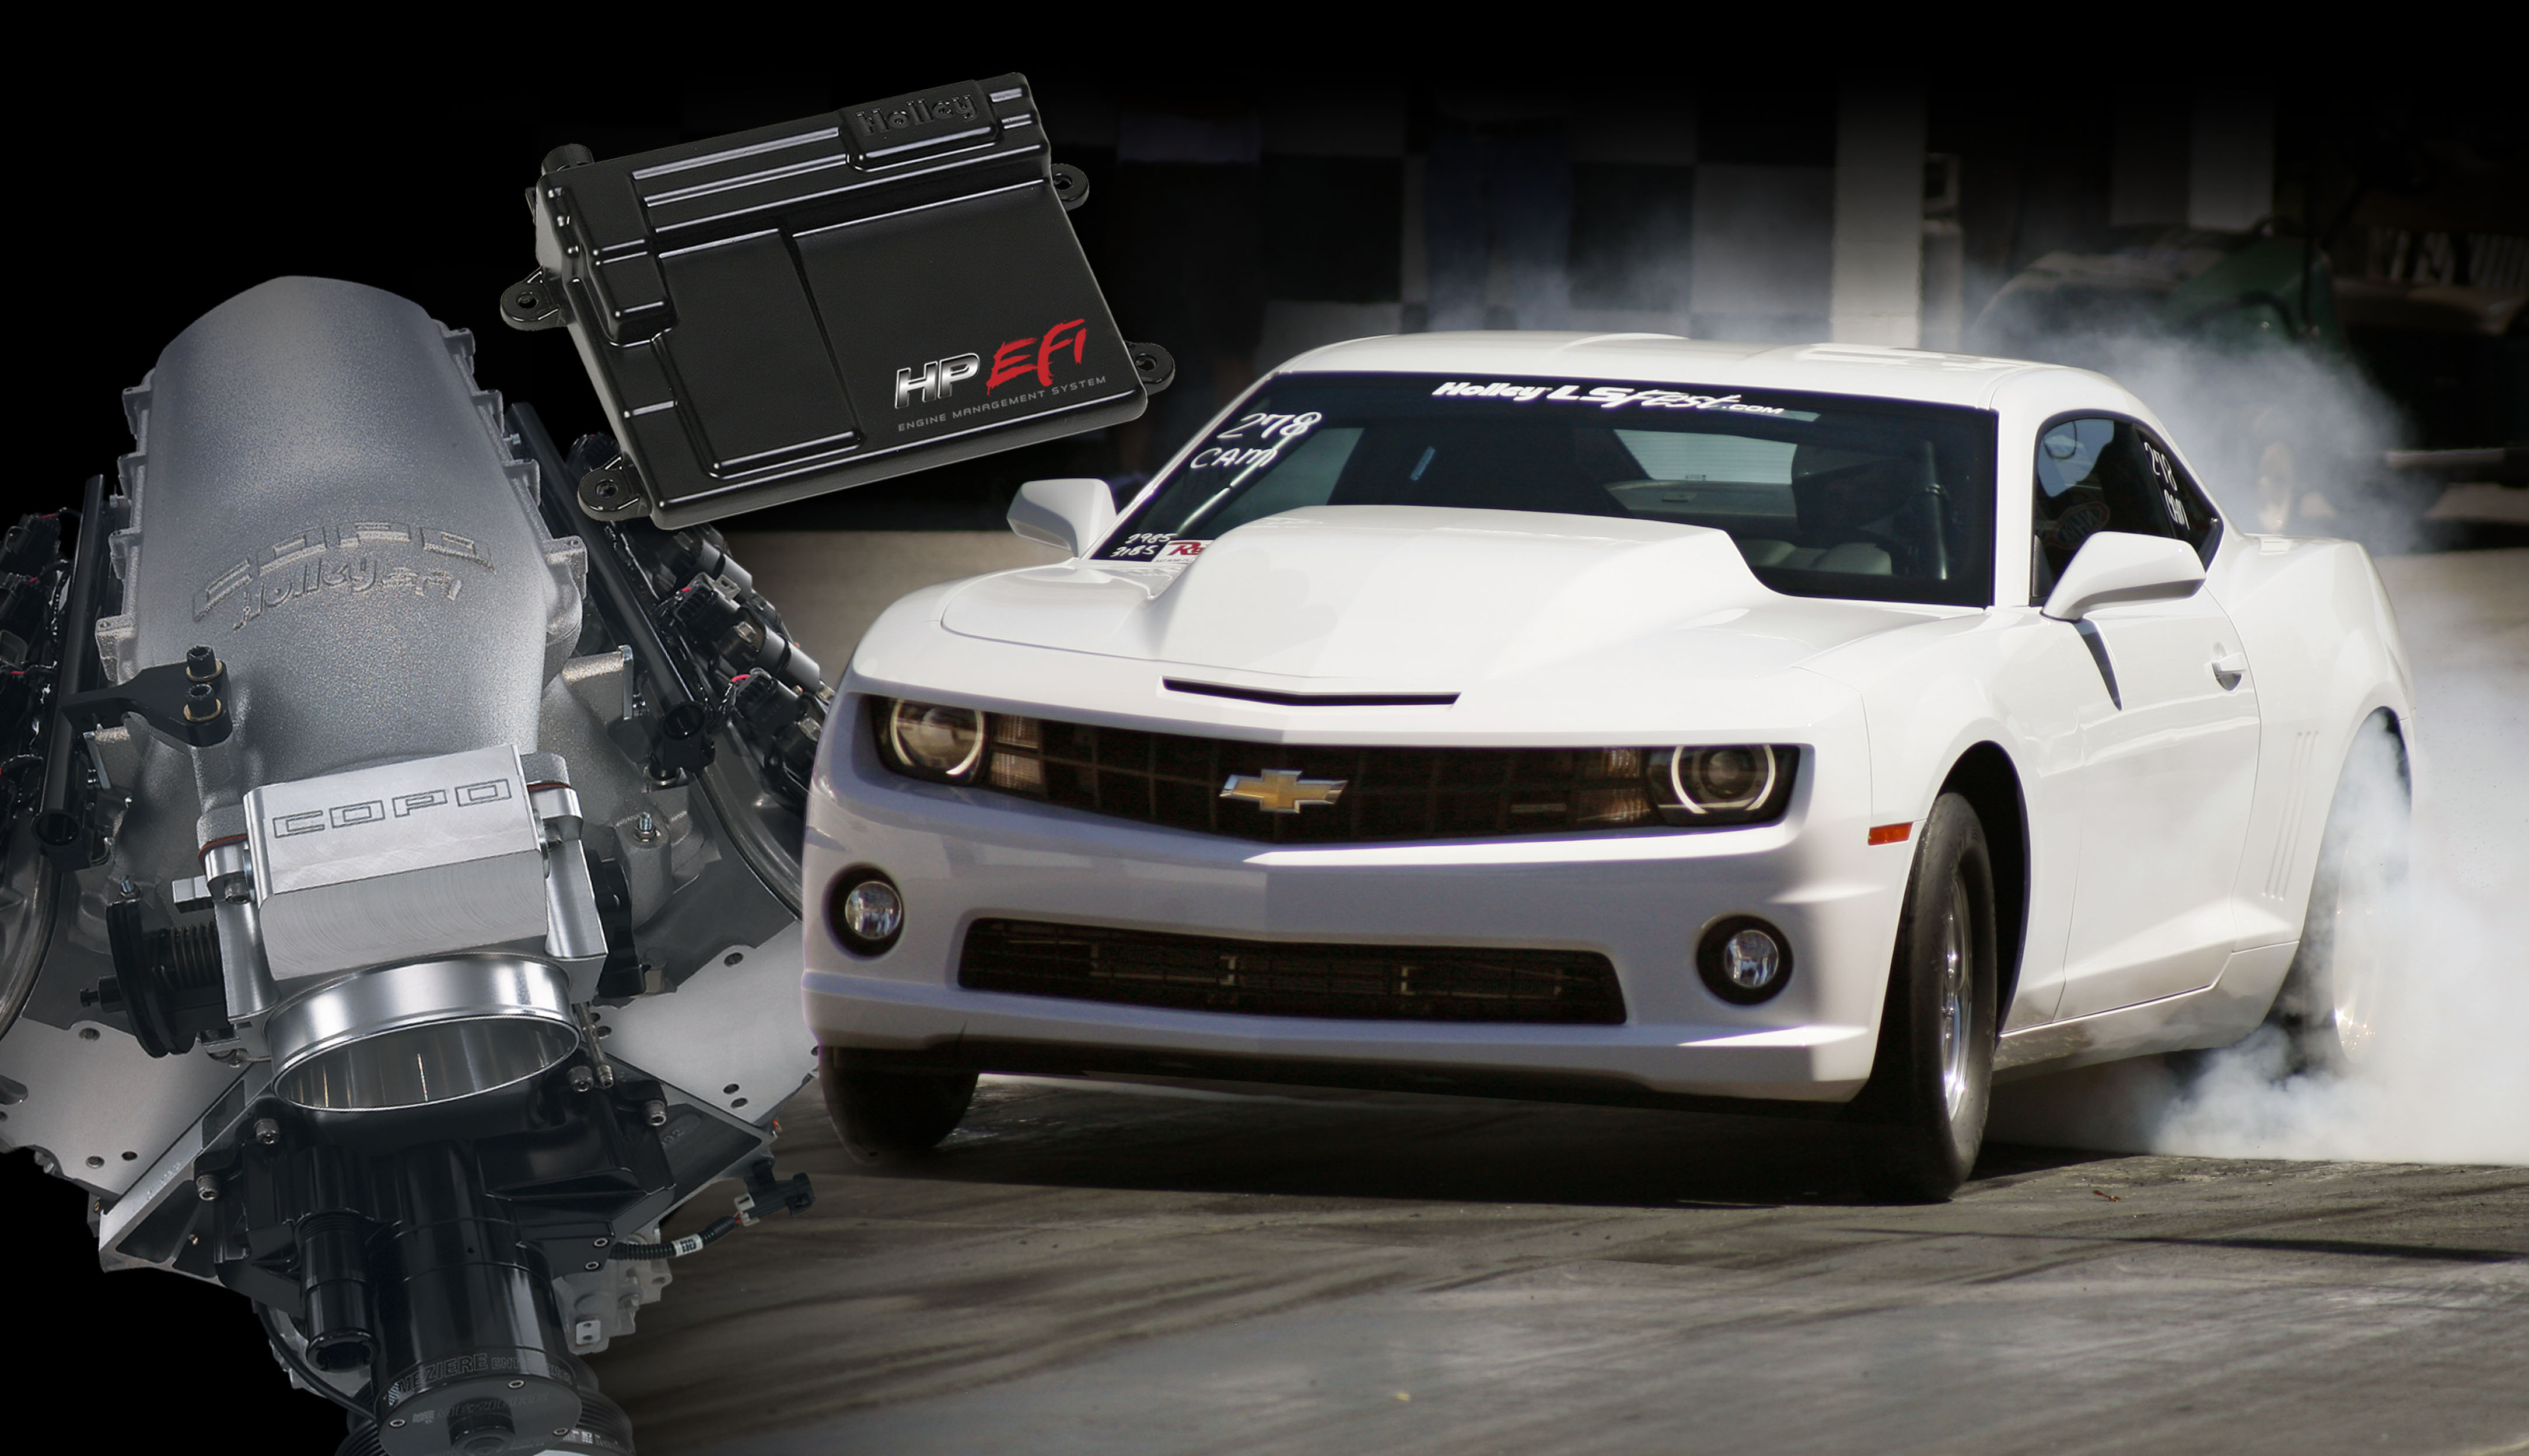 bangshift big news: all new copo camaros will be holley equipped